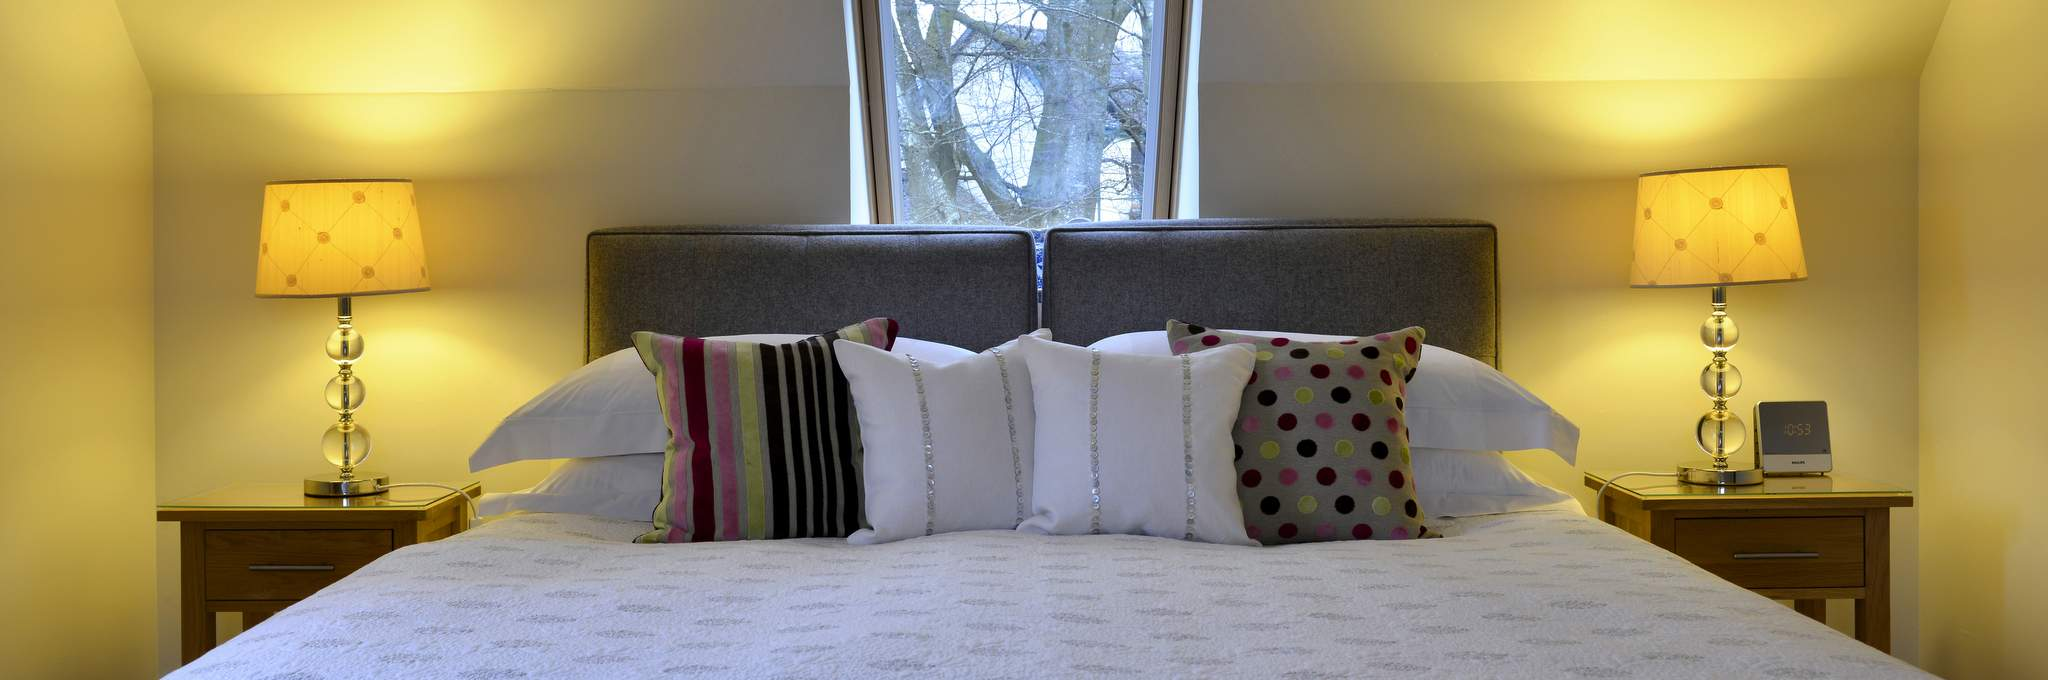 Bed and Breakfasts in Perthshire